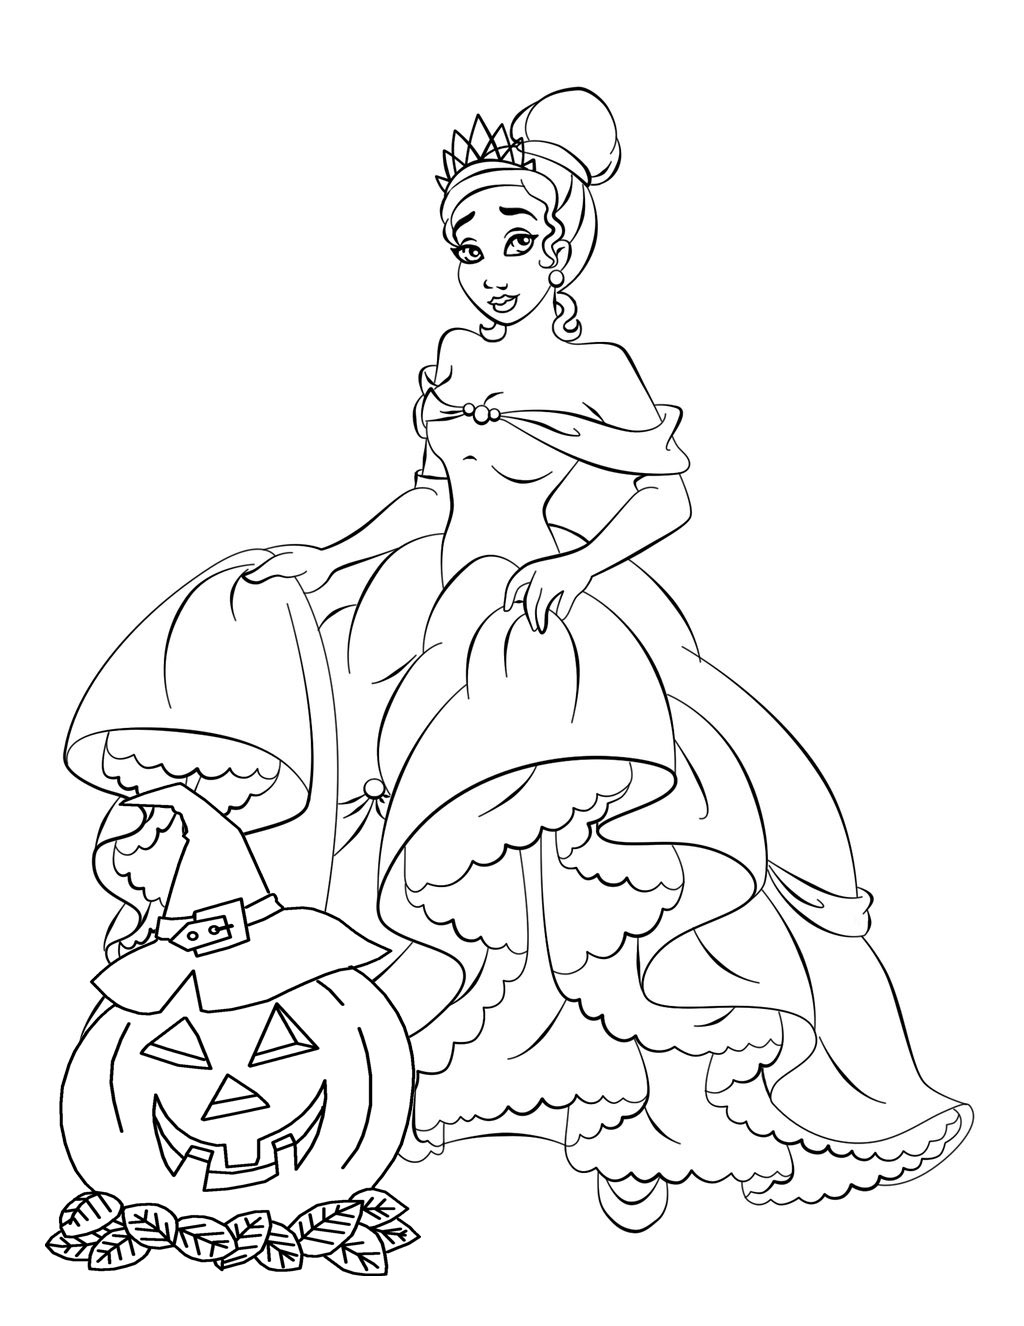 halween coloring pages - photo#39